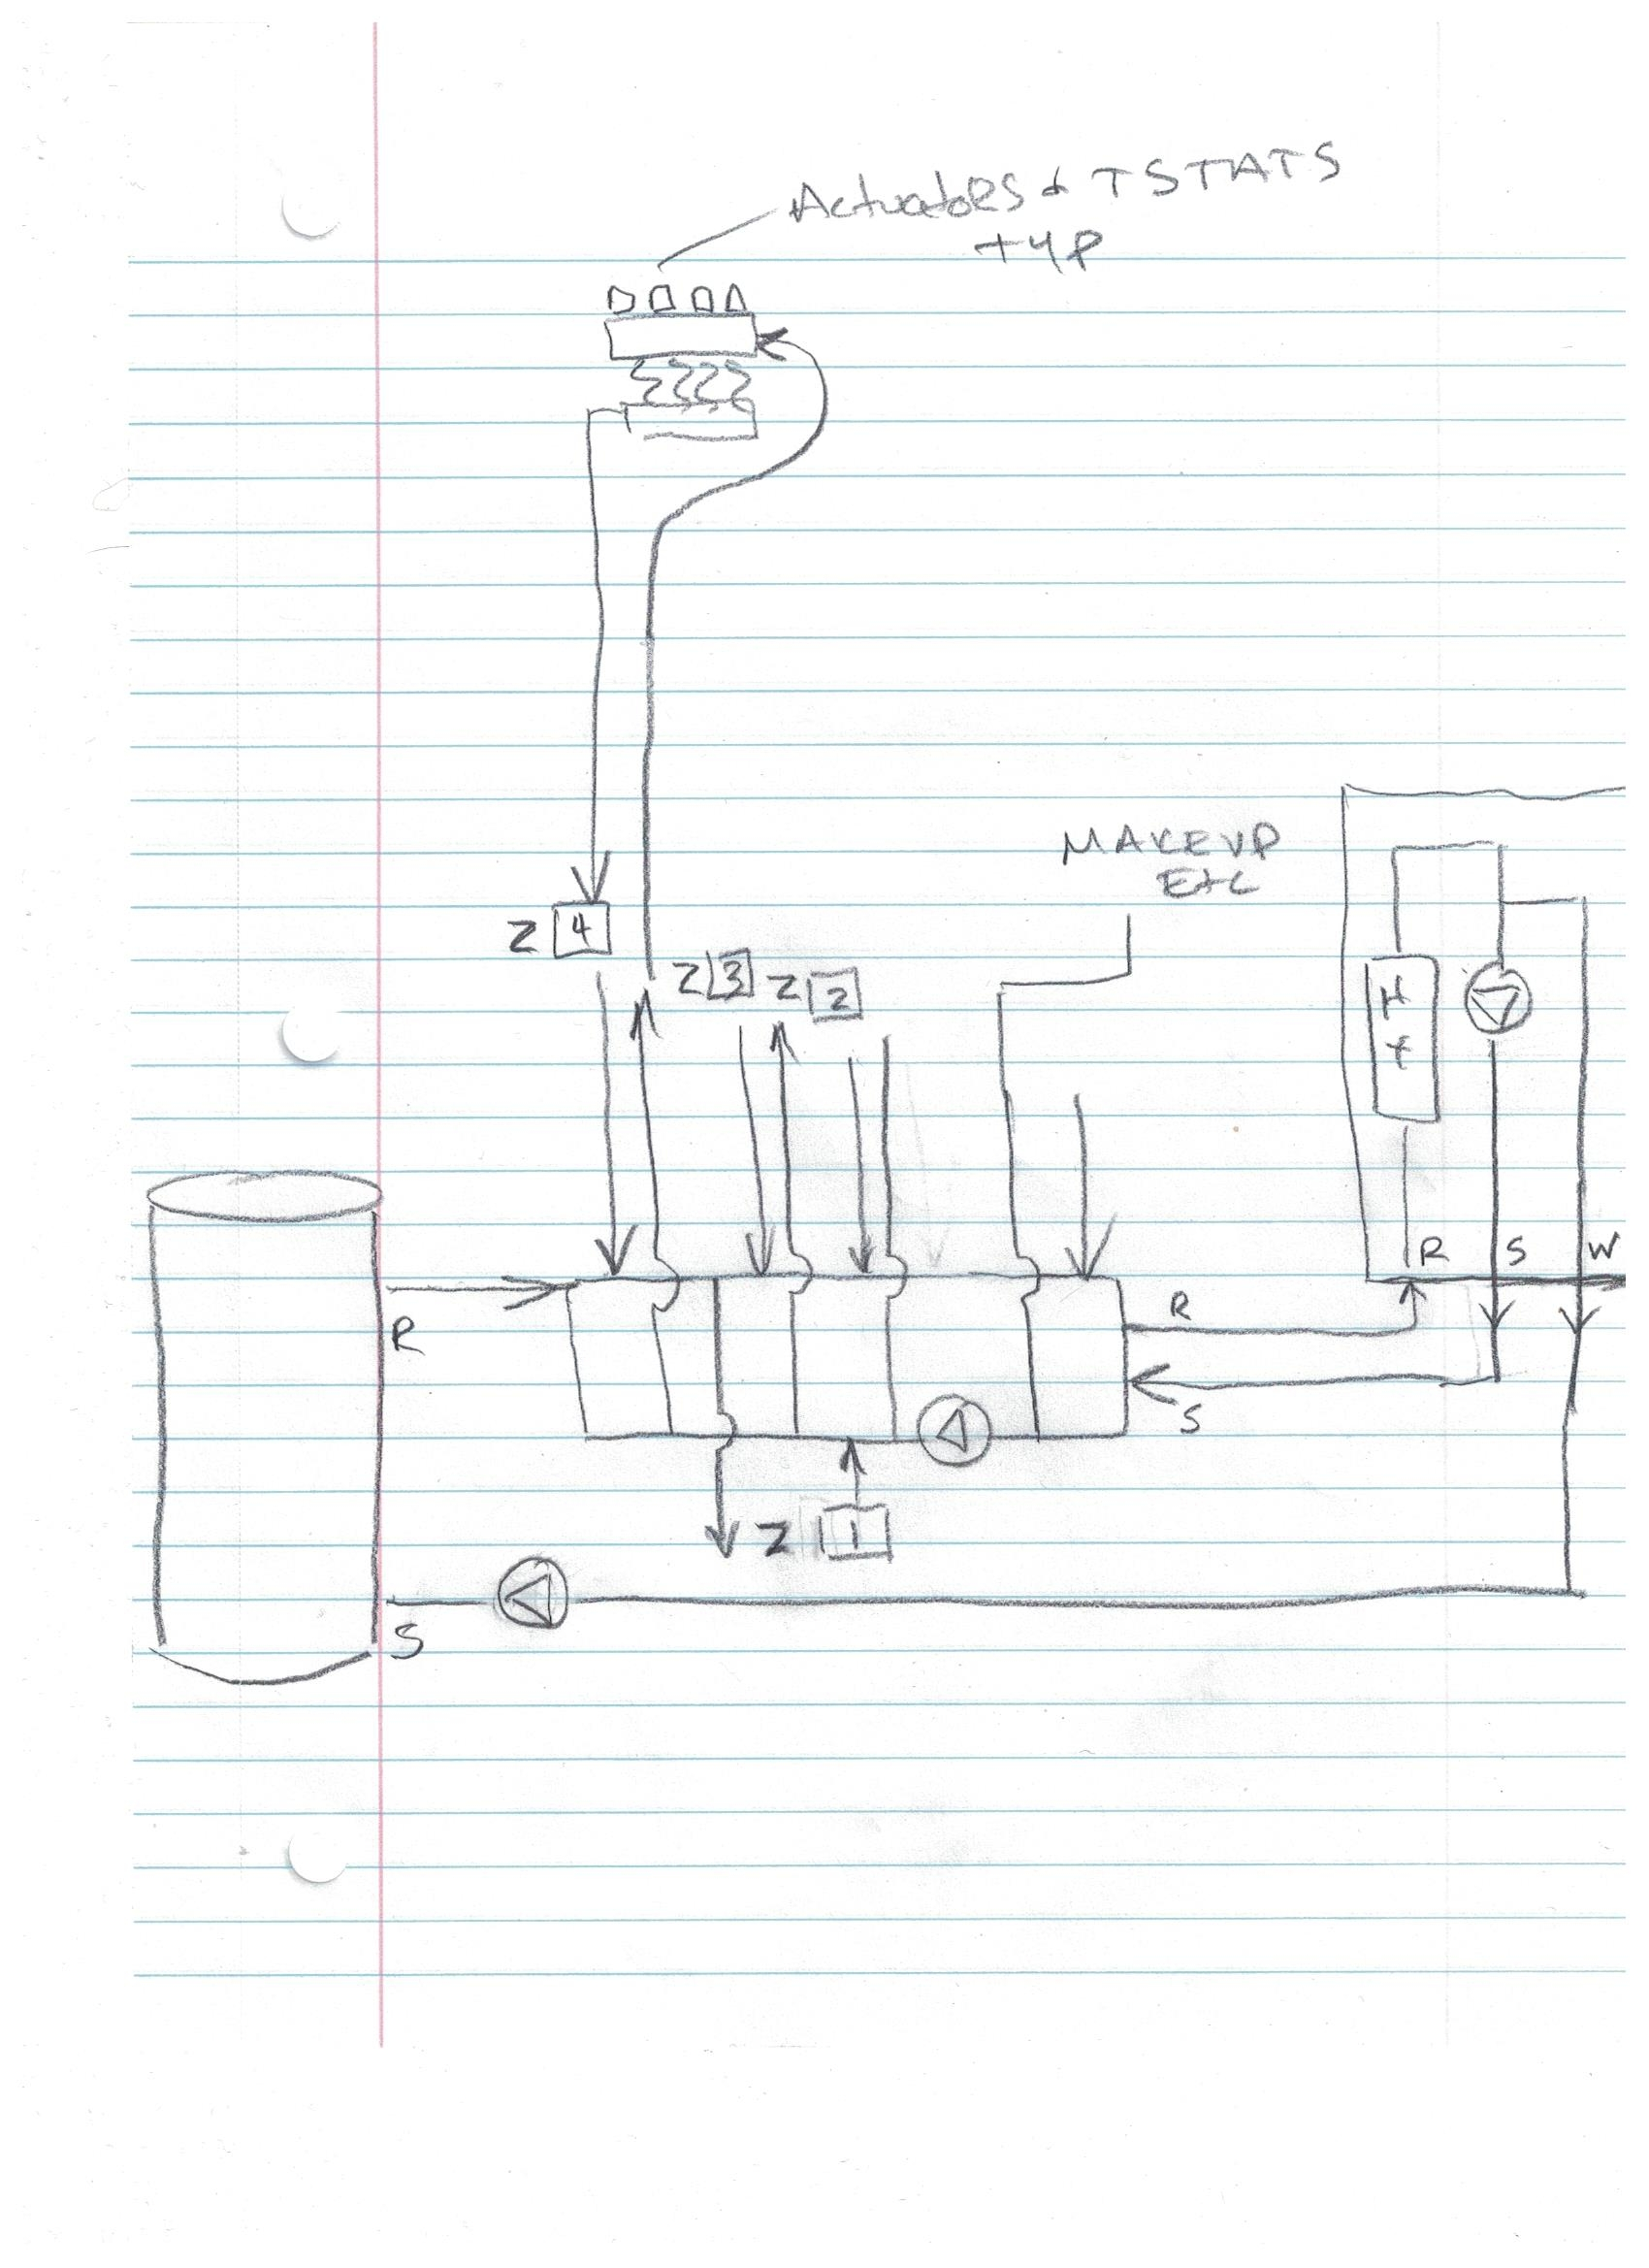 Is this good near boiler piping — Heating Help: The Wall